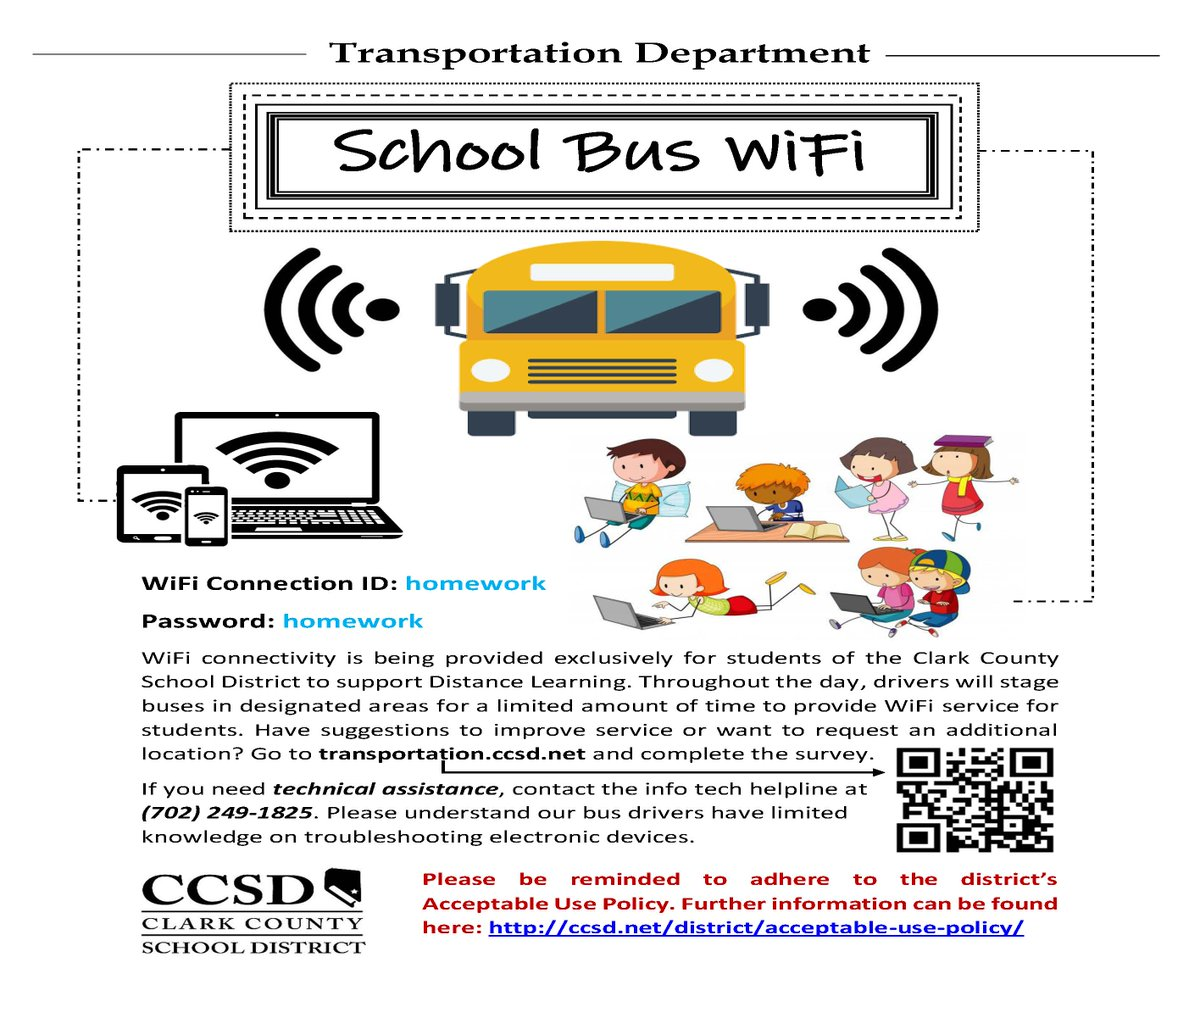 Ccsd On Twitter Ccsd Began Testing A System For Wi Fi Access At Various Locations Throughout The Valley Today Via School Buses That Will Be Parked At Different Locations Along Designated Routes Maps